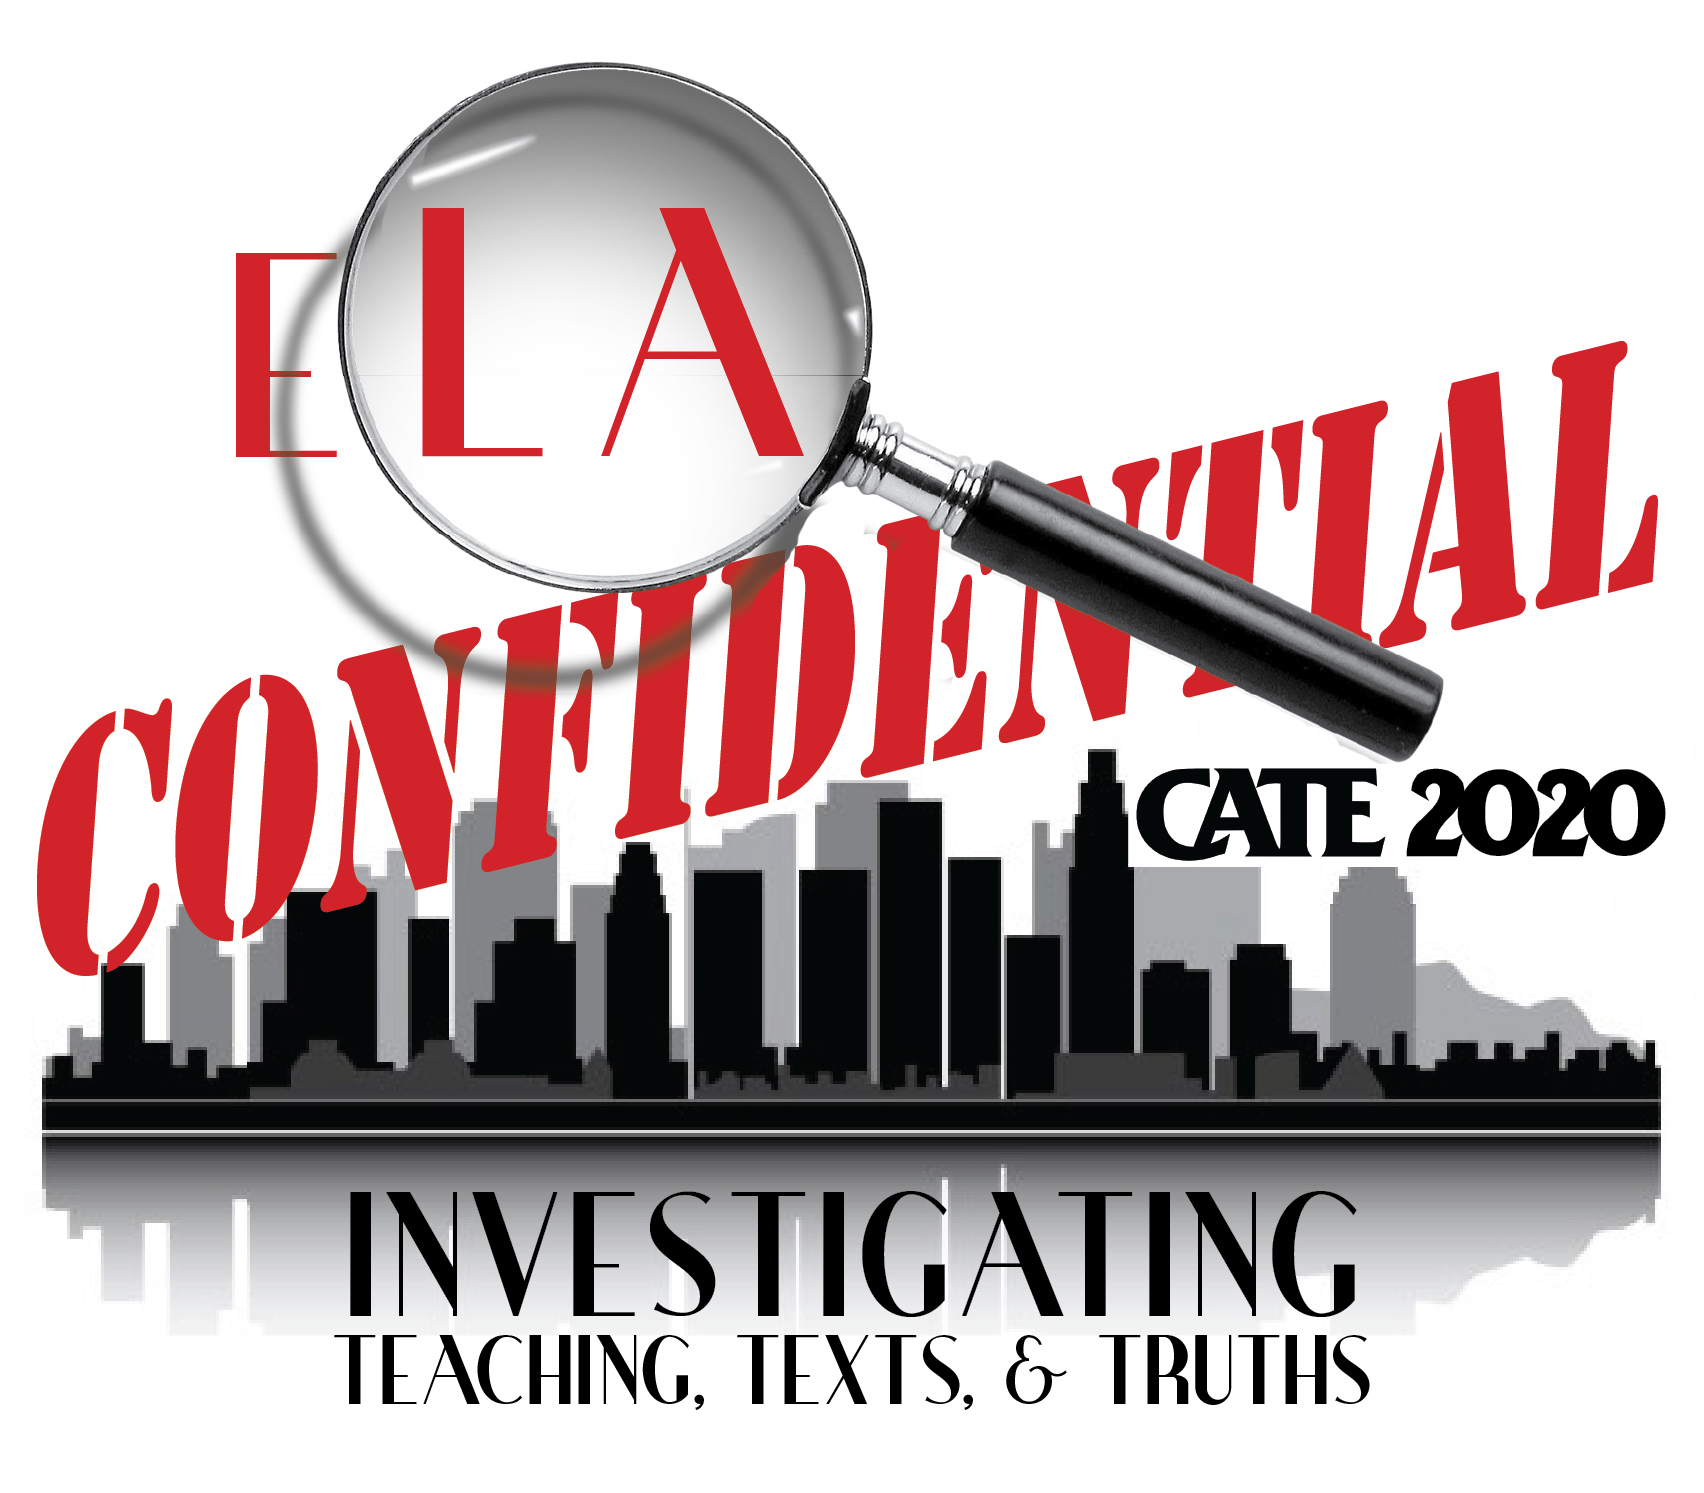 CATE 2020, ELA Confidential: Investigating Teaching, Texts, and Truths